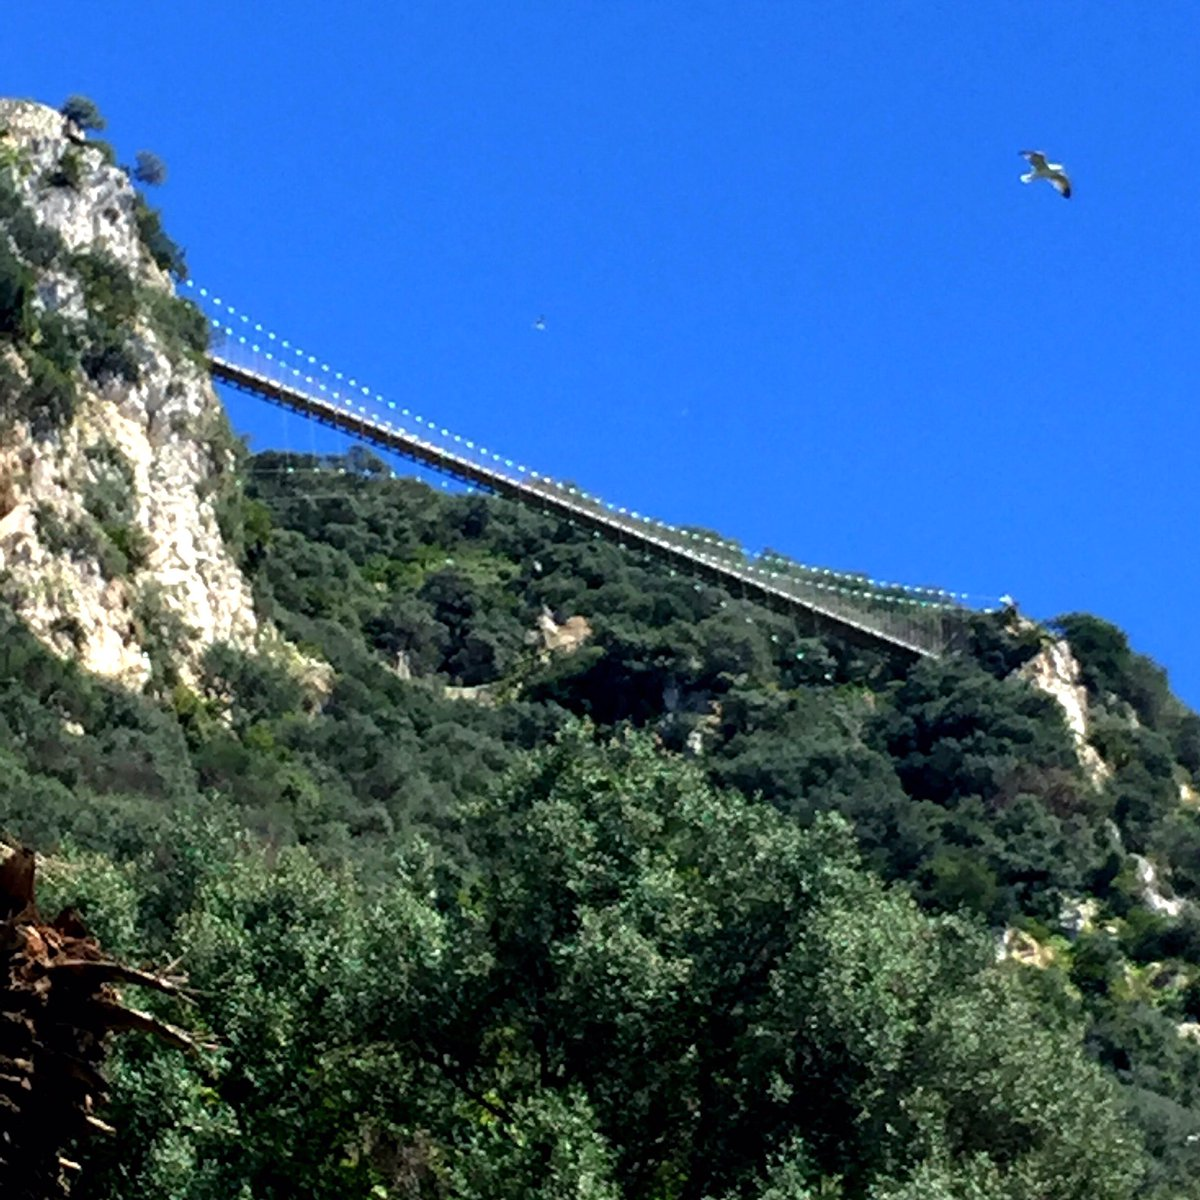 Skywalk in #Gibraltar is nearing completion & should be open by summer https://t.co/knGdFbbf51